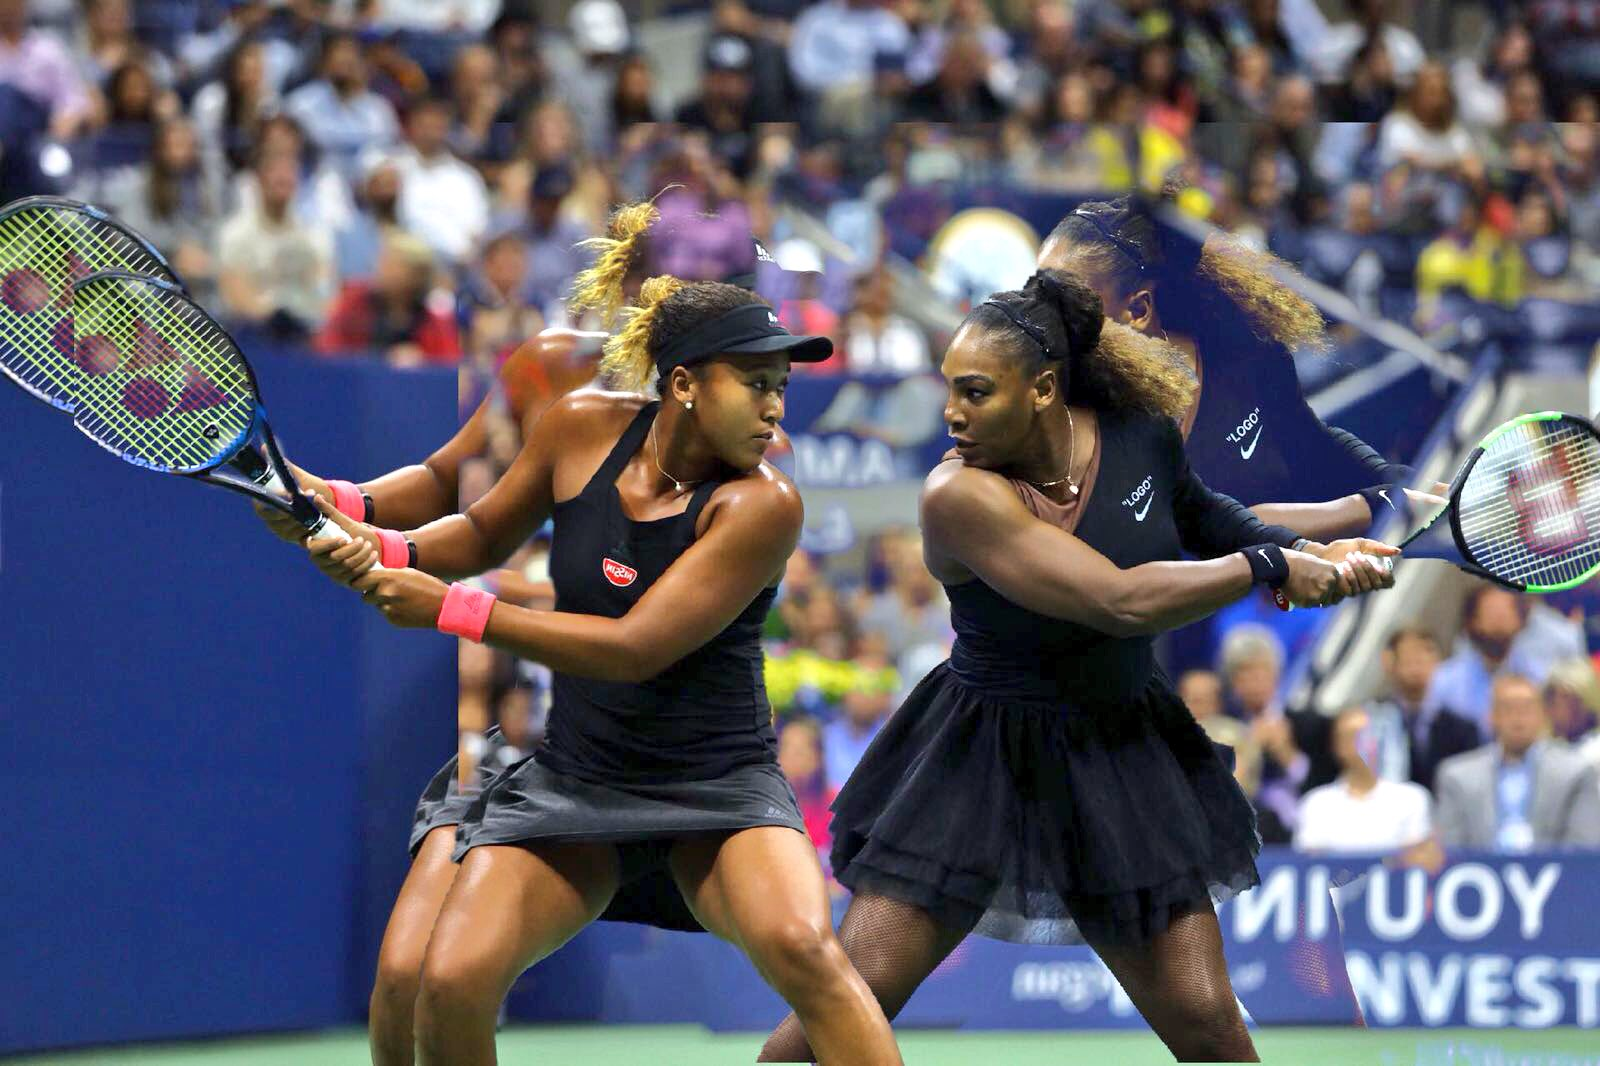 Reloaded twaddle – RT @usopen: ◀️▶️  This year's #USOpen final sets the...